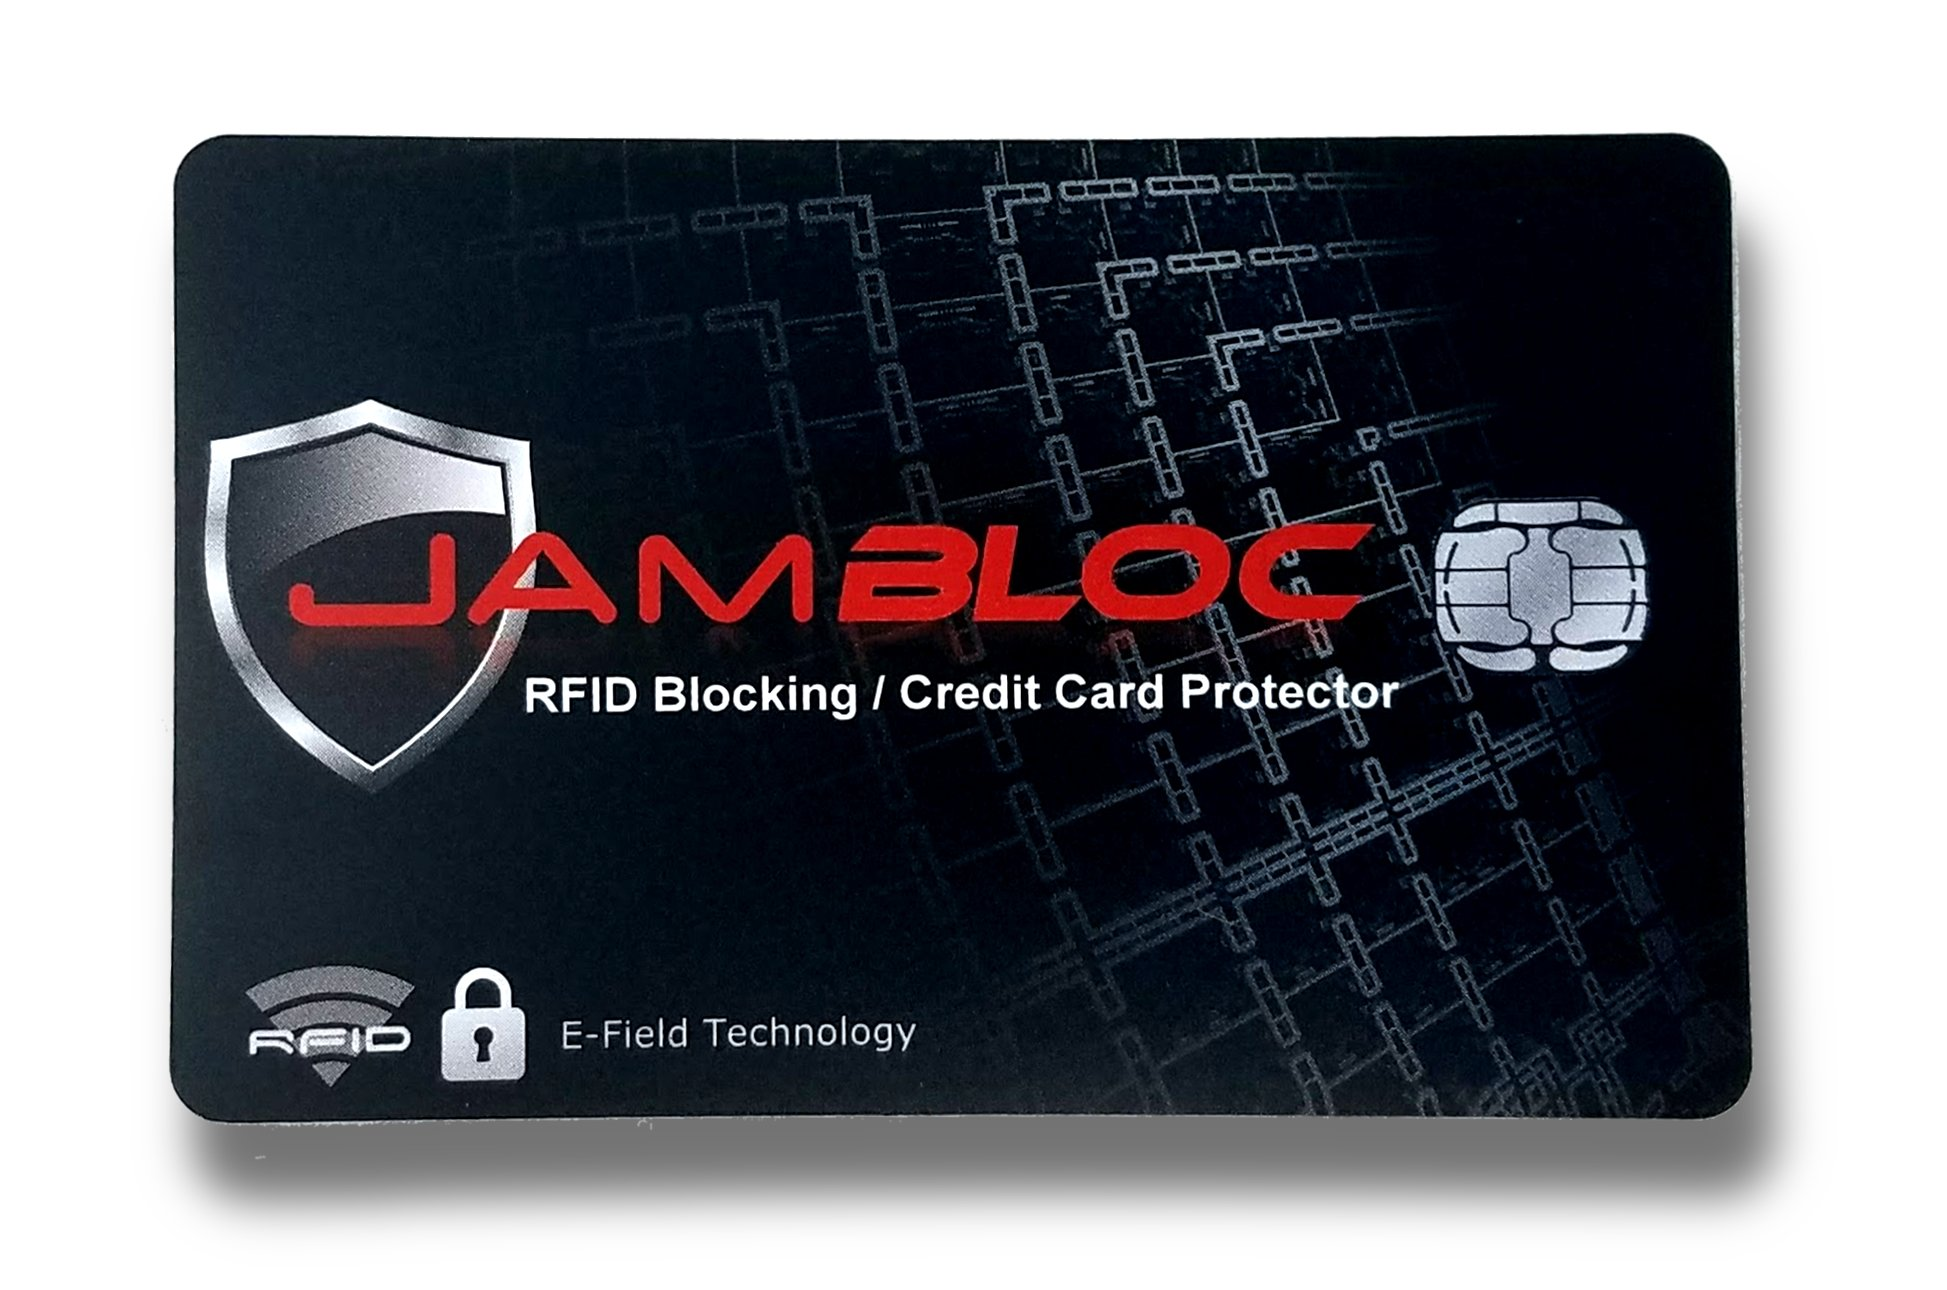 Jambloc RFID Blocking Card - A Single Card is All You Need to Shield and Protect Your Entire Wallet, Purse or Passport from Scams and Identity Theft